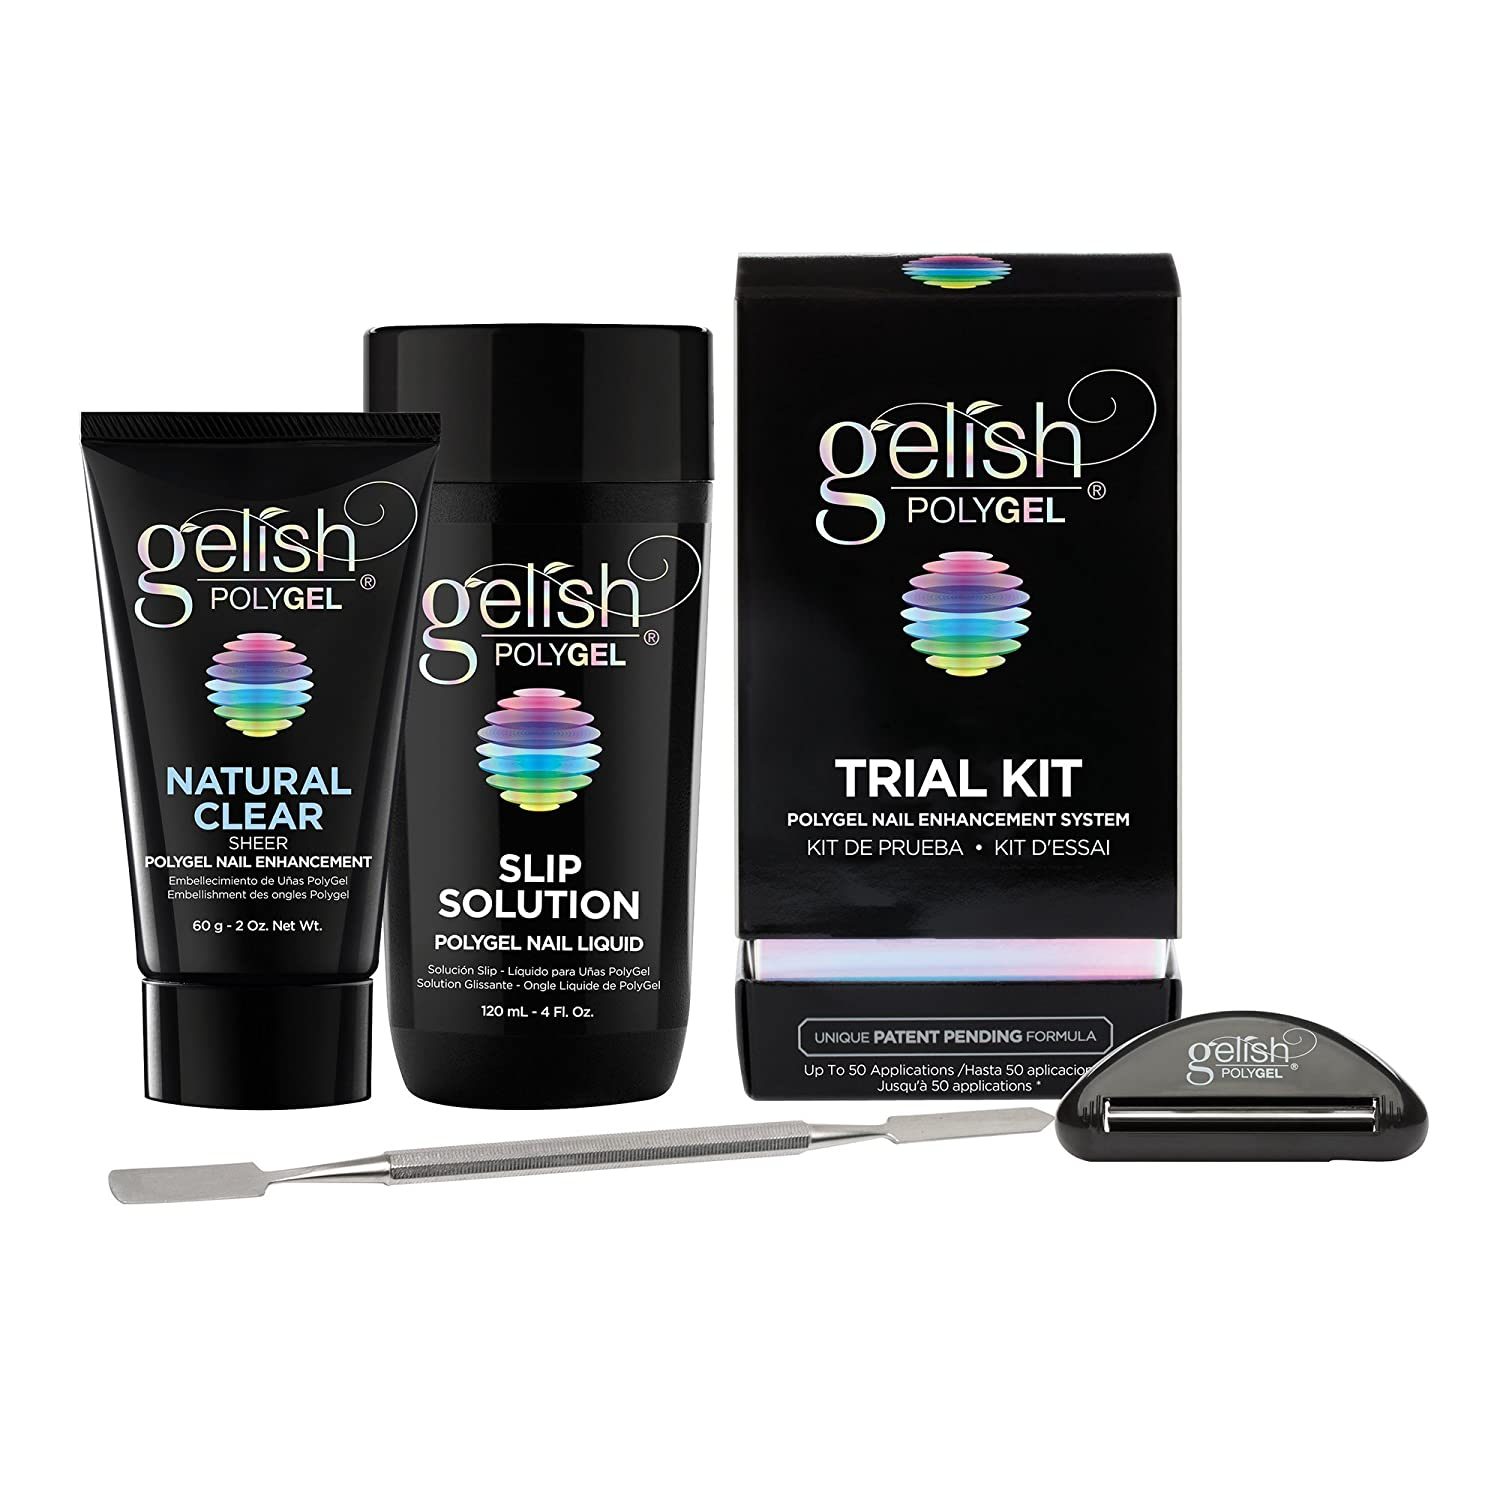 Gelish PolyGel Professional Nail Technician All-in-One Enhancement Trial Kit